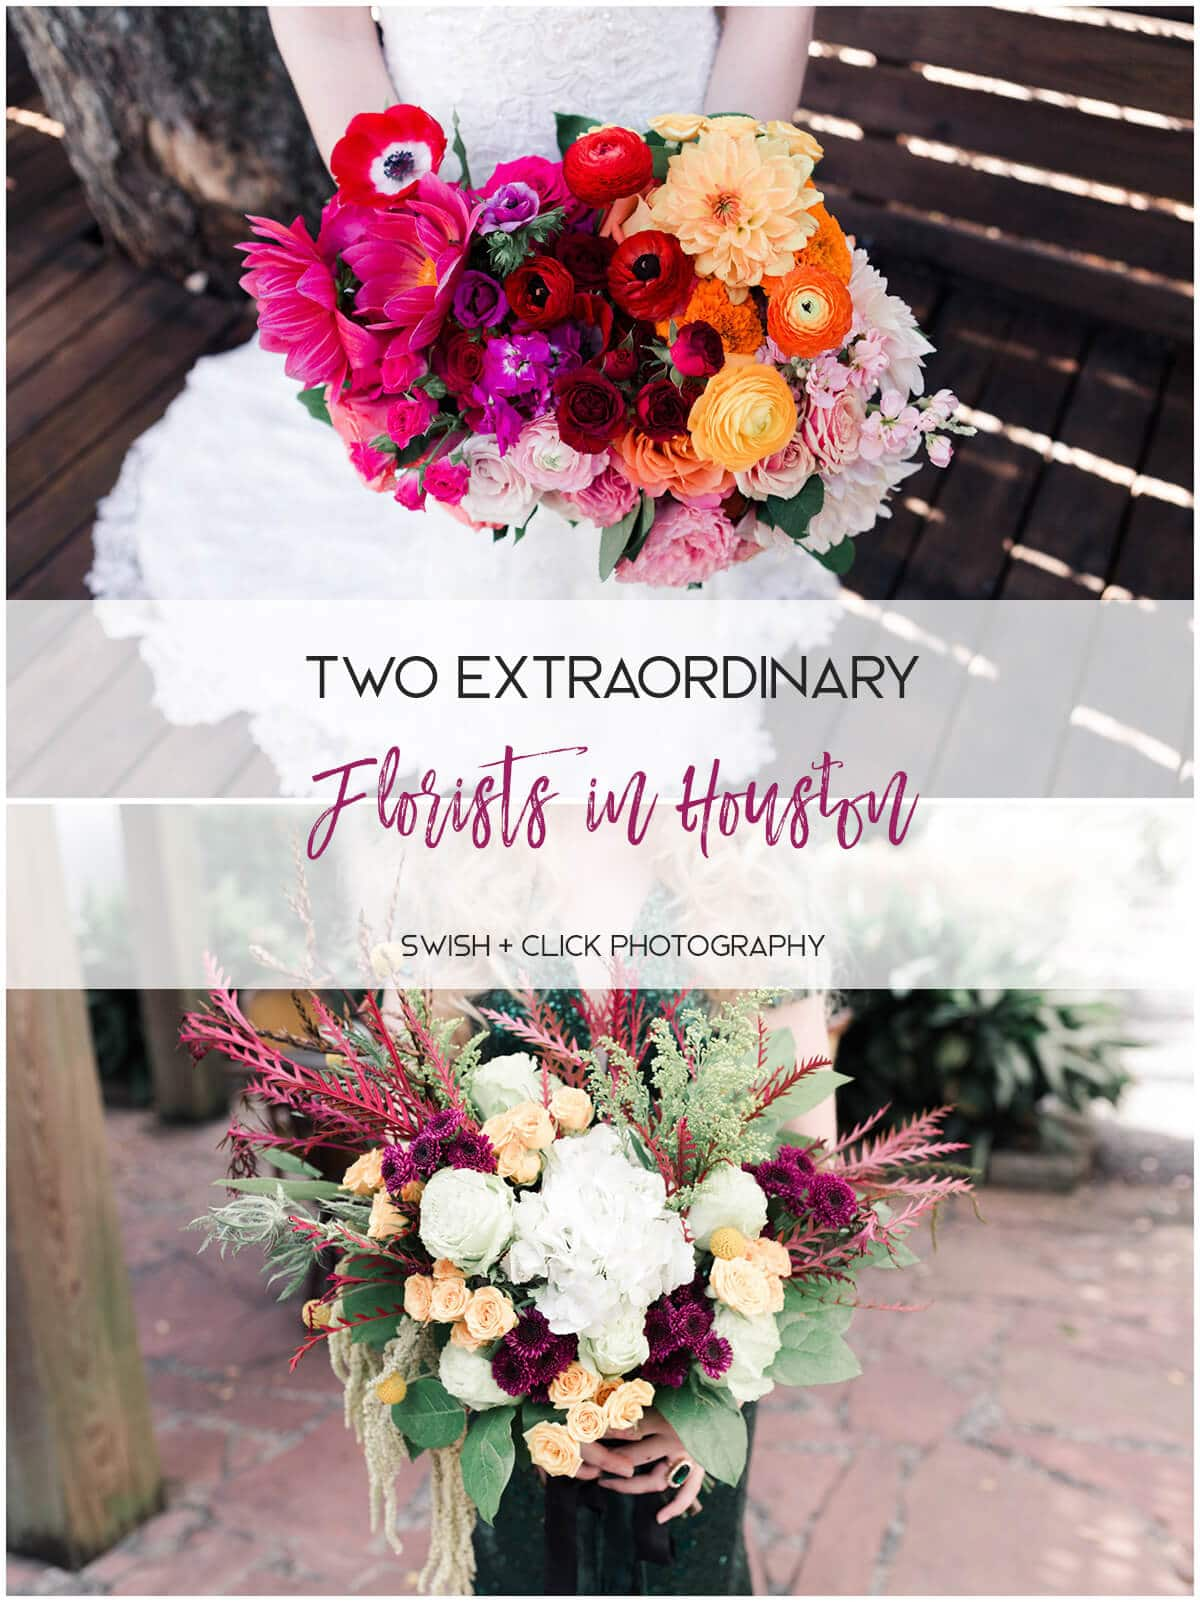 Two Extraordinary Houston Florists